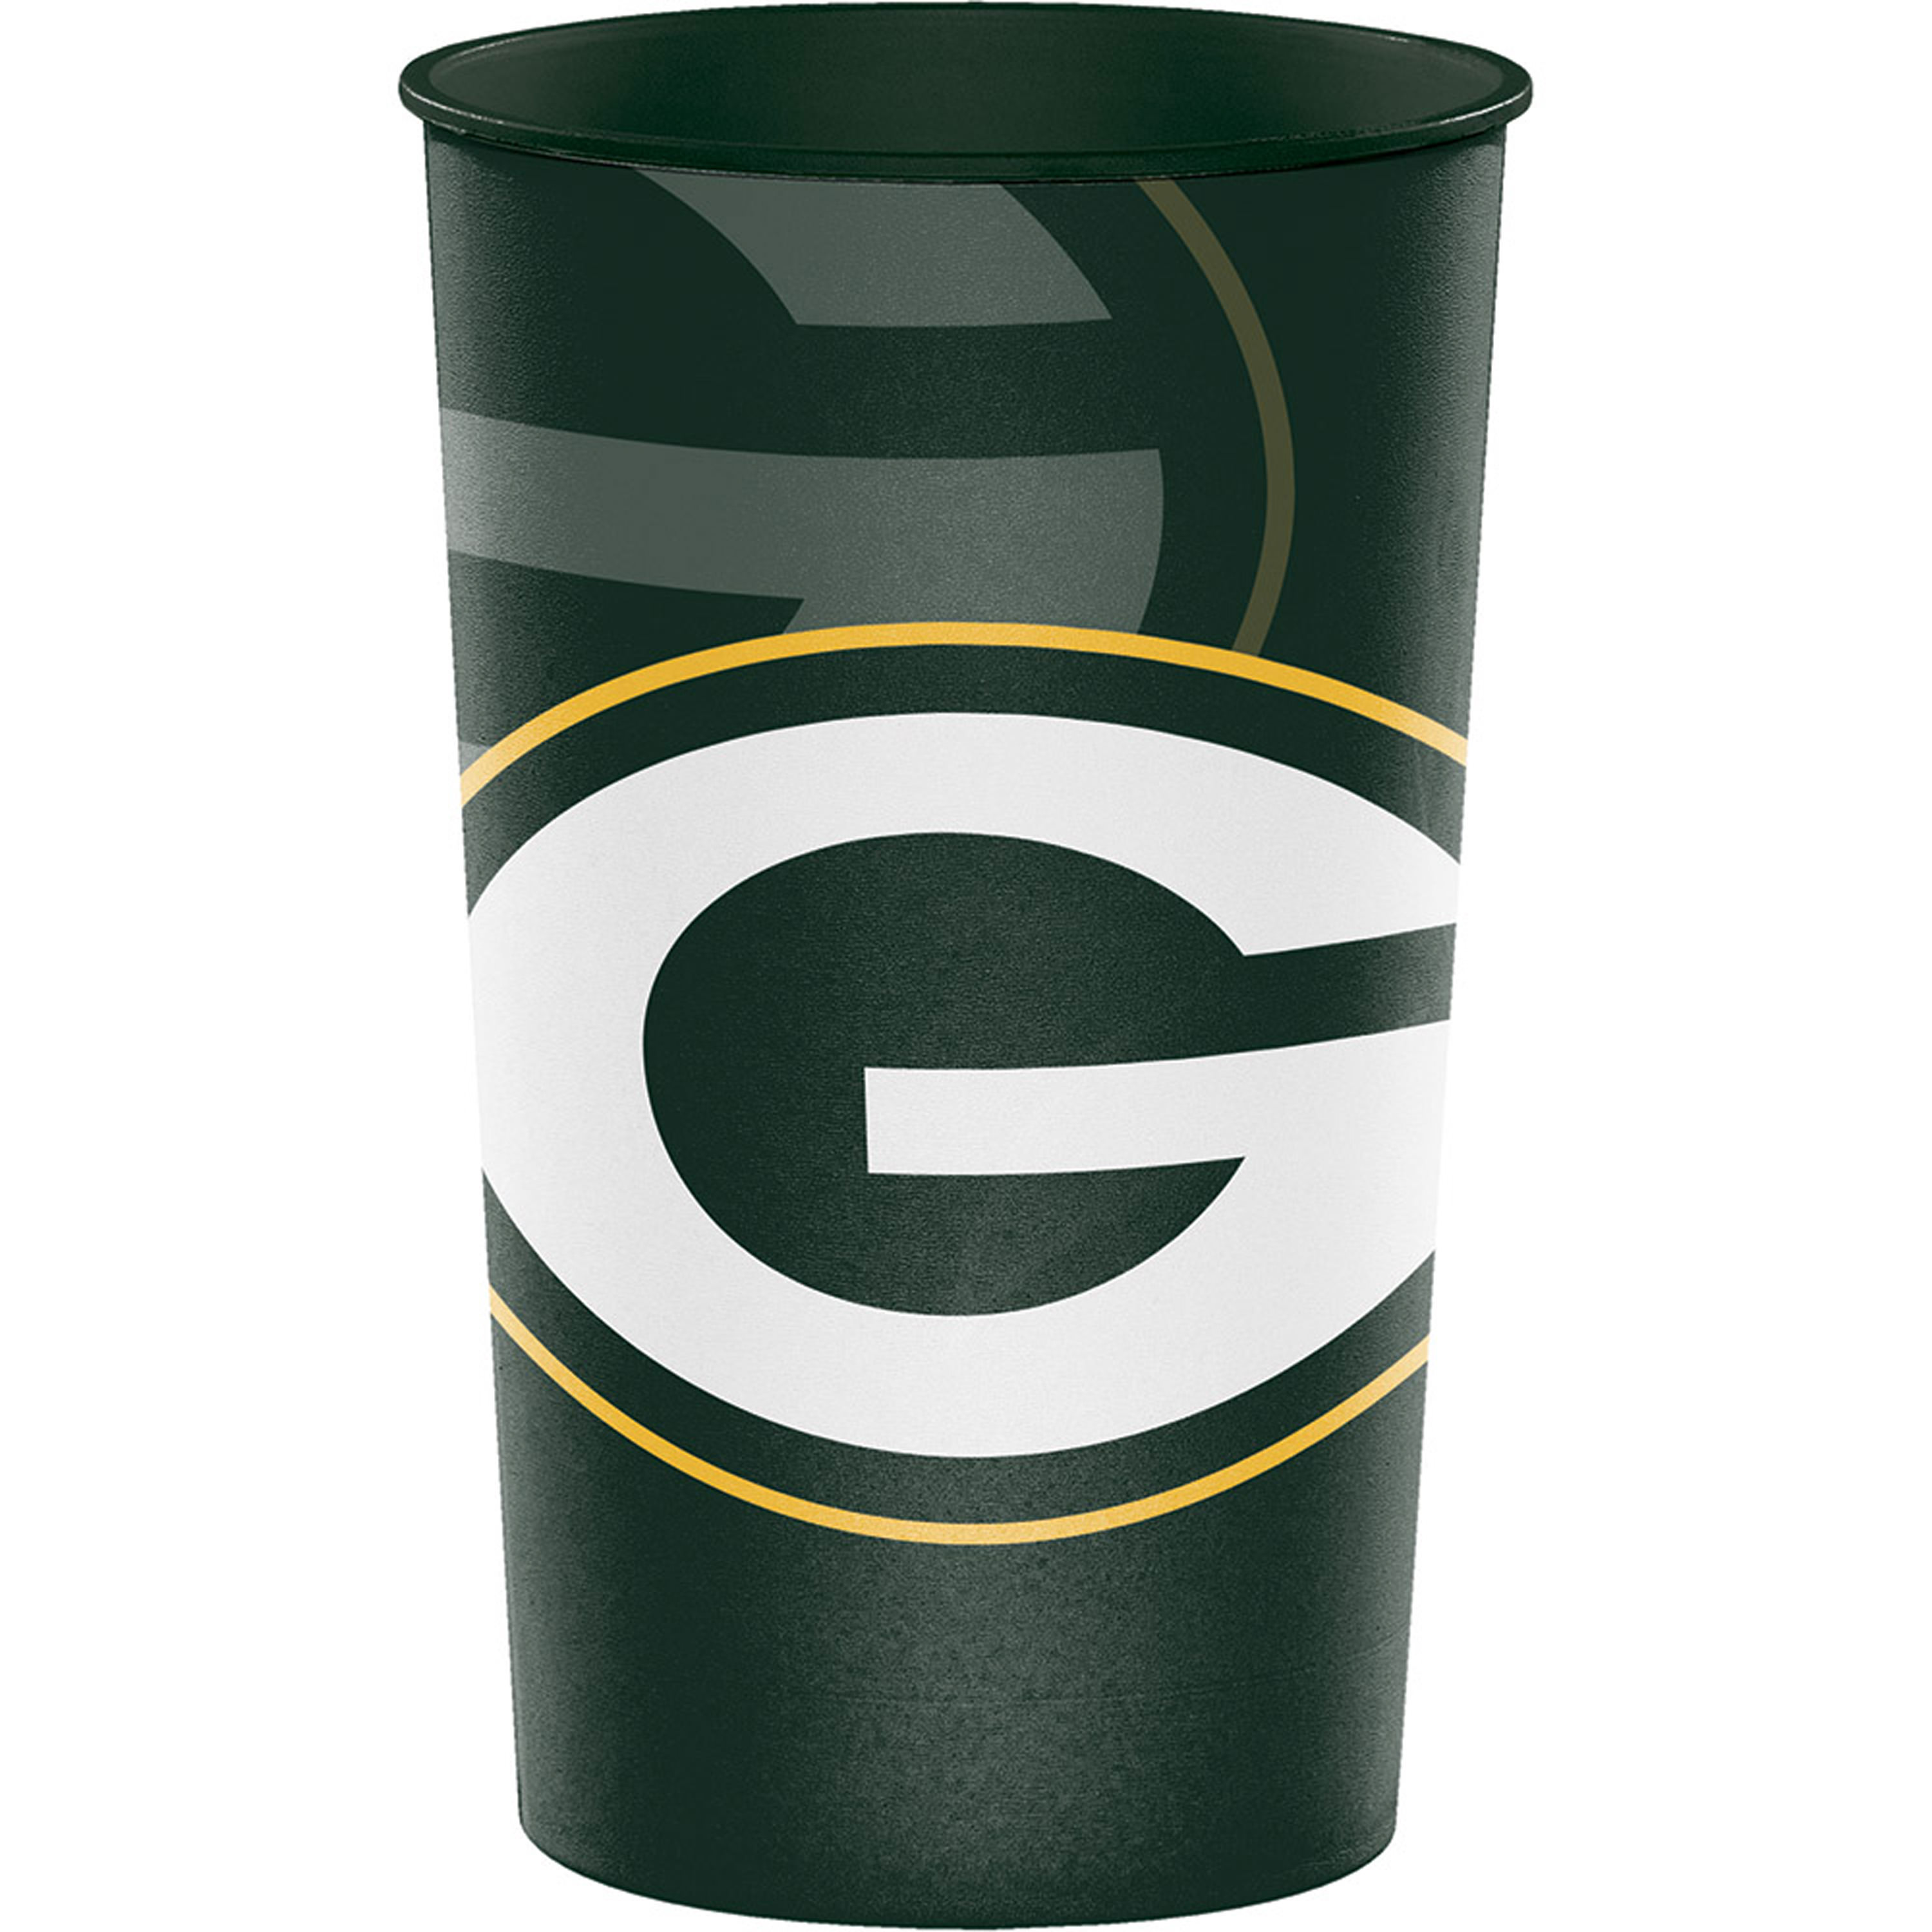 Nfl Green Bay Packers Souvenir Cups, 8 count